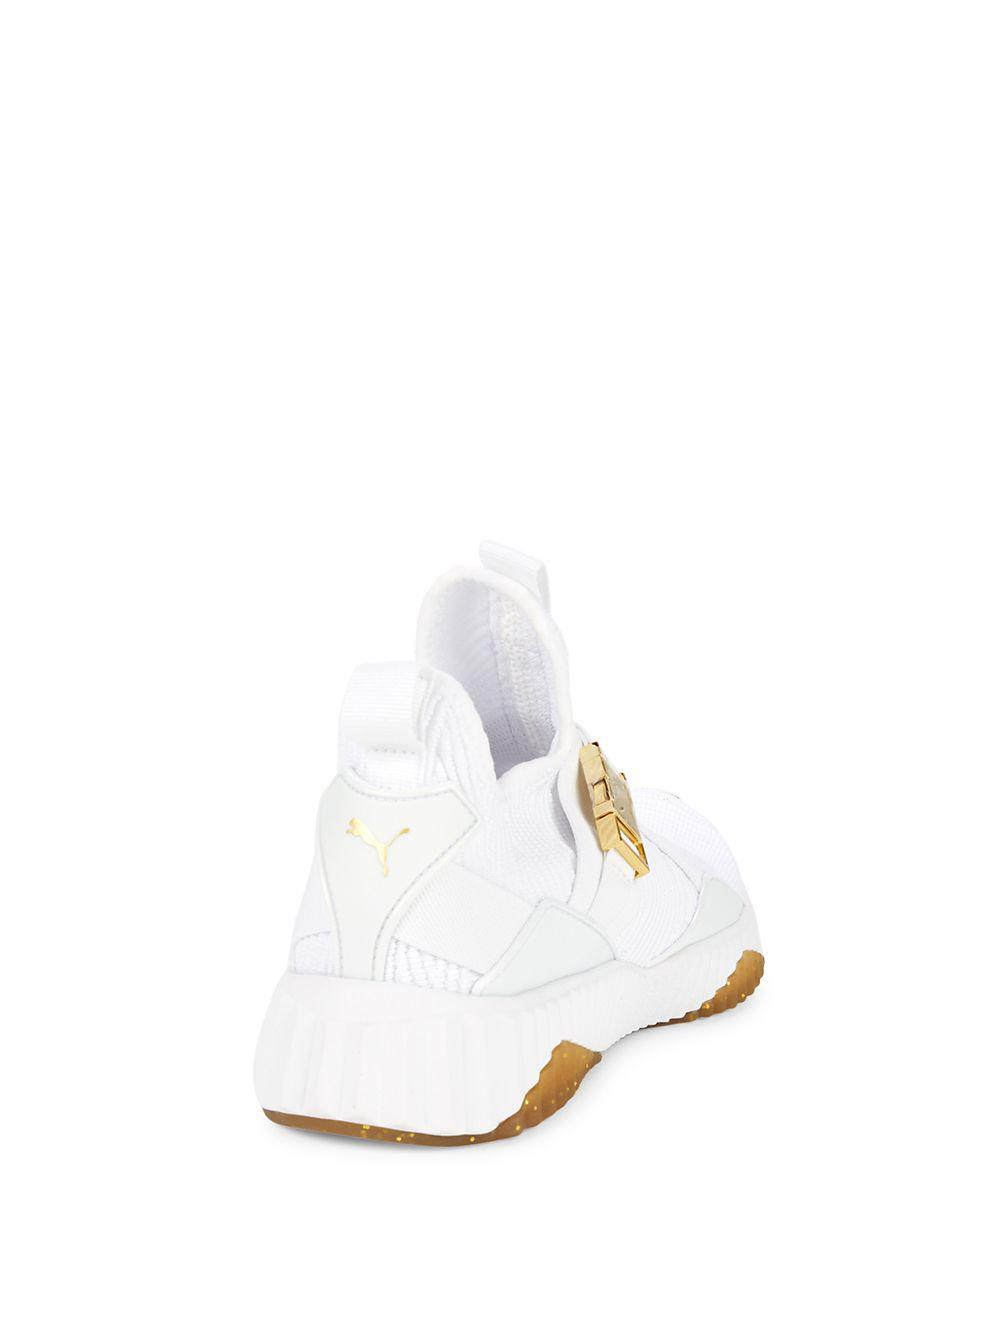 ea9126e5f5eb94 PUMA - White Defy Mid-top Sneakers - Lyst. View fullscreen